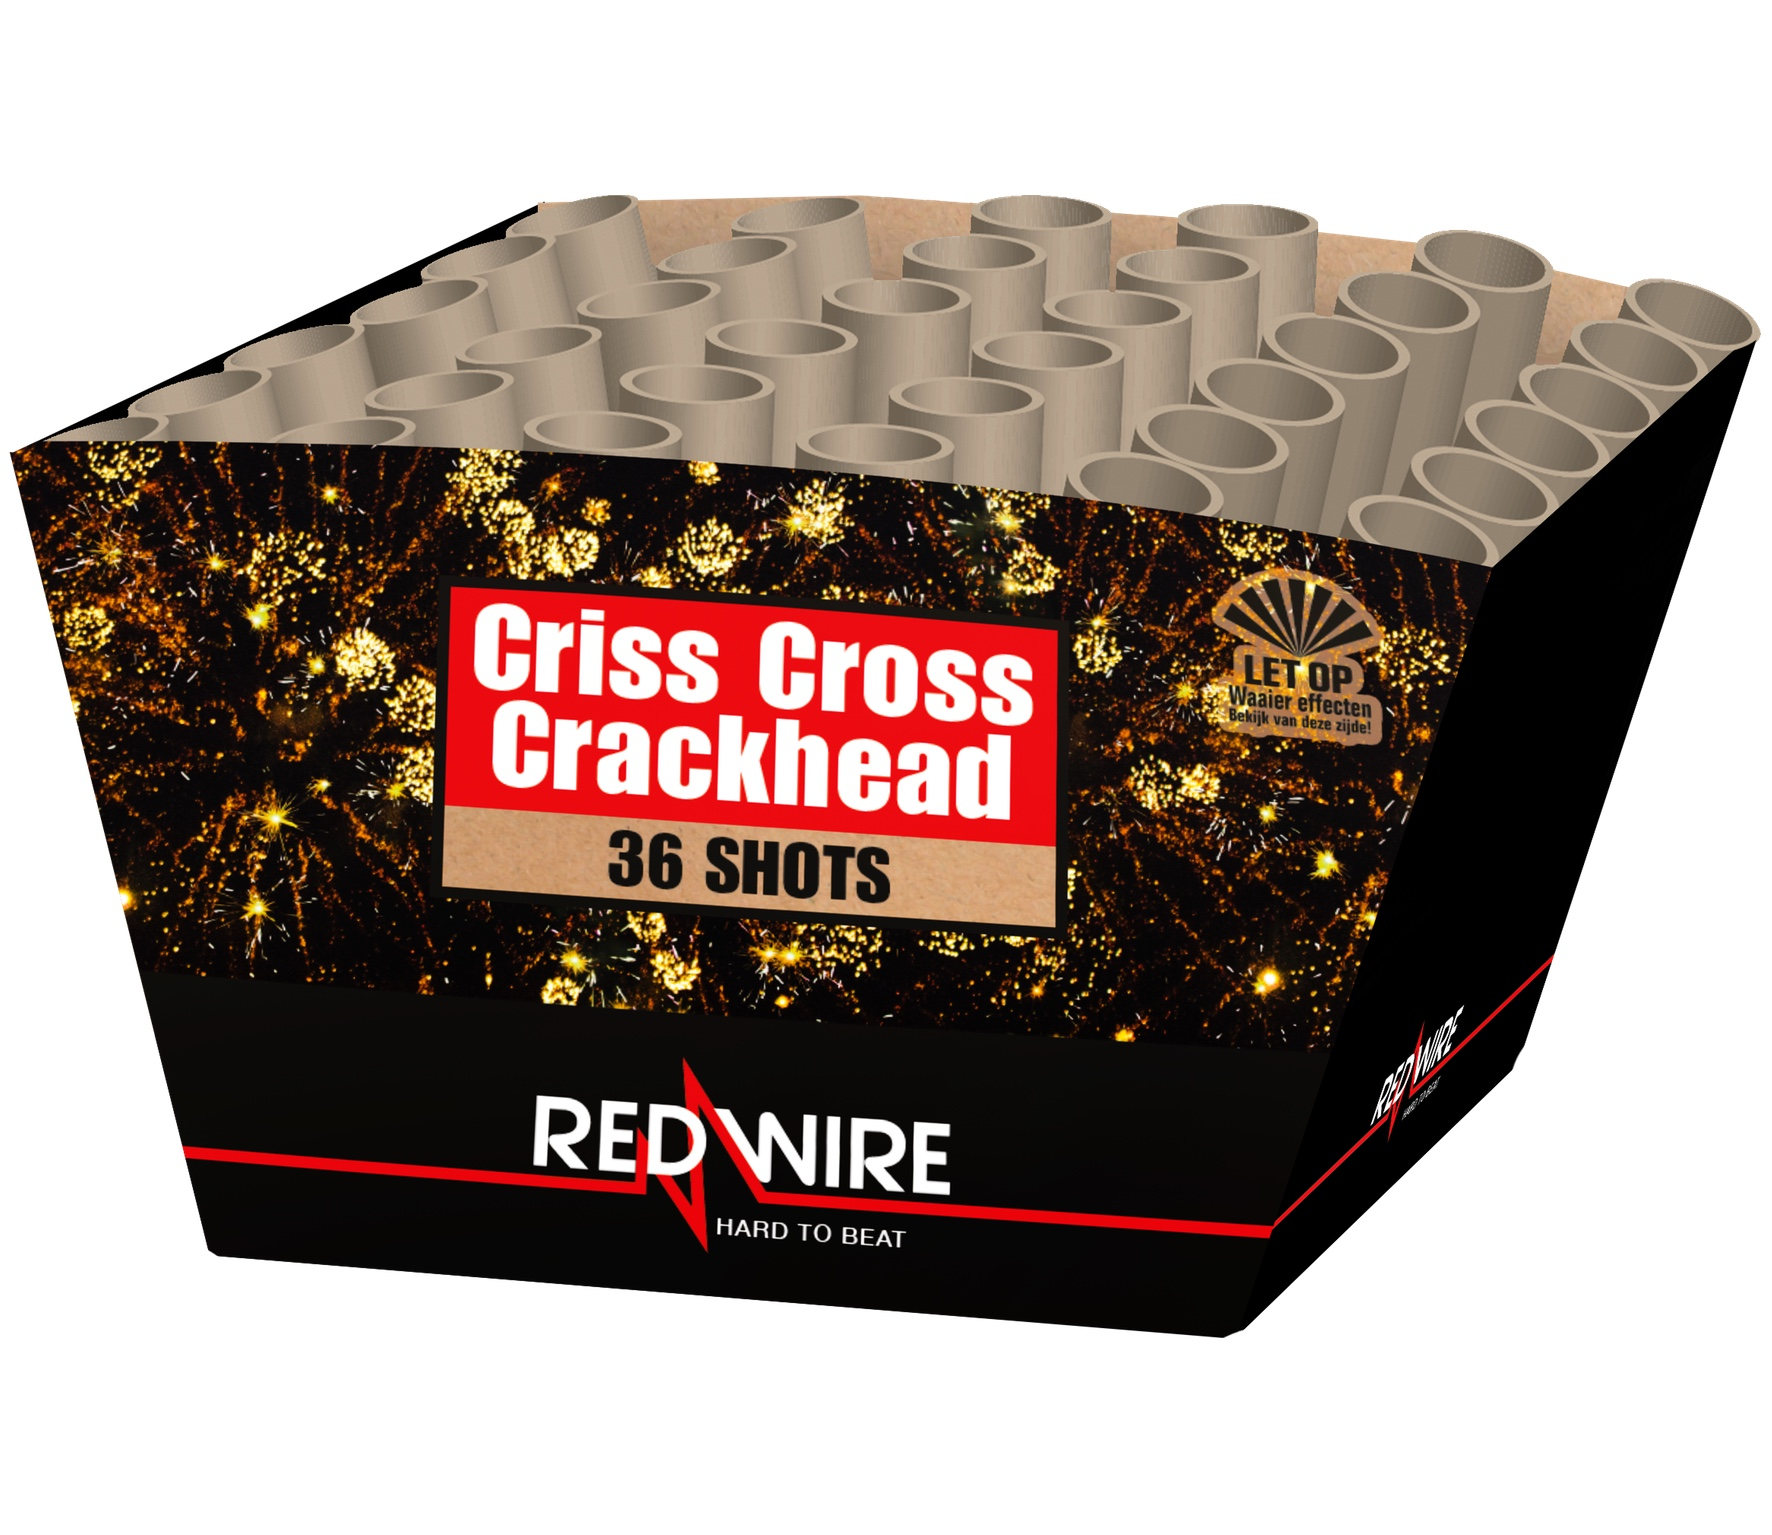 Criss Cross Crackhead 36 schots